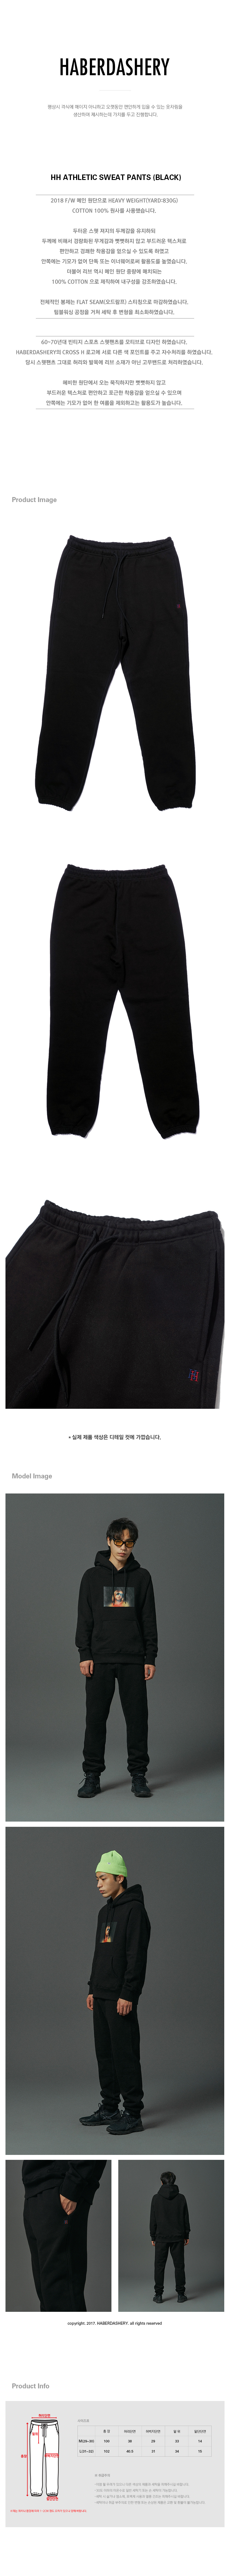 해버대셔리(HABERDASHERY) HH ATHLETIC SWEAT PANTS (BLACK)